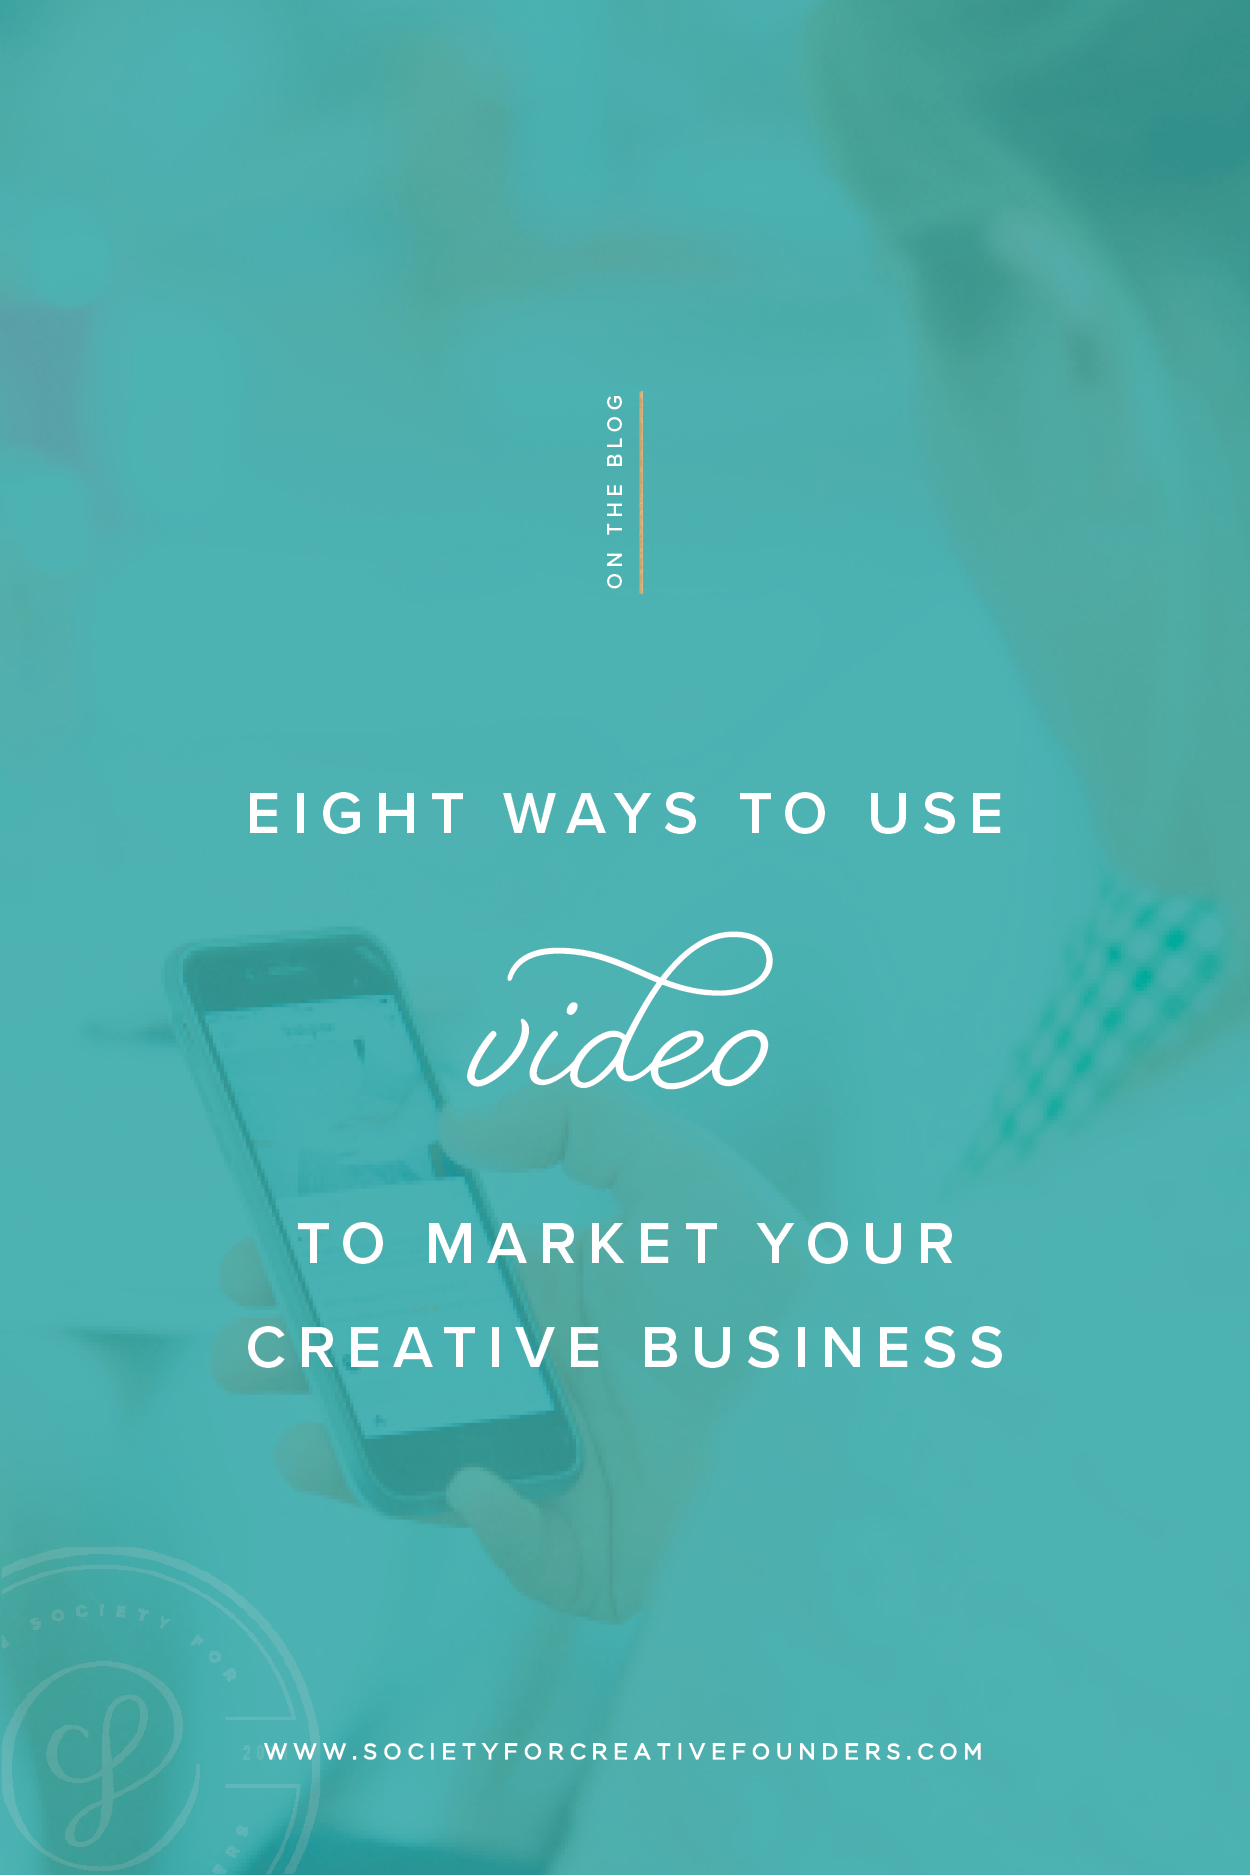 Seven Ways to use Video for Marketing on Social Media - Society for Creative Founders